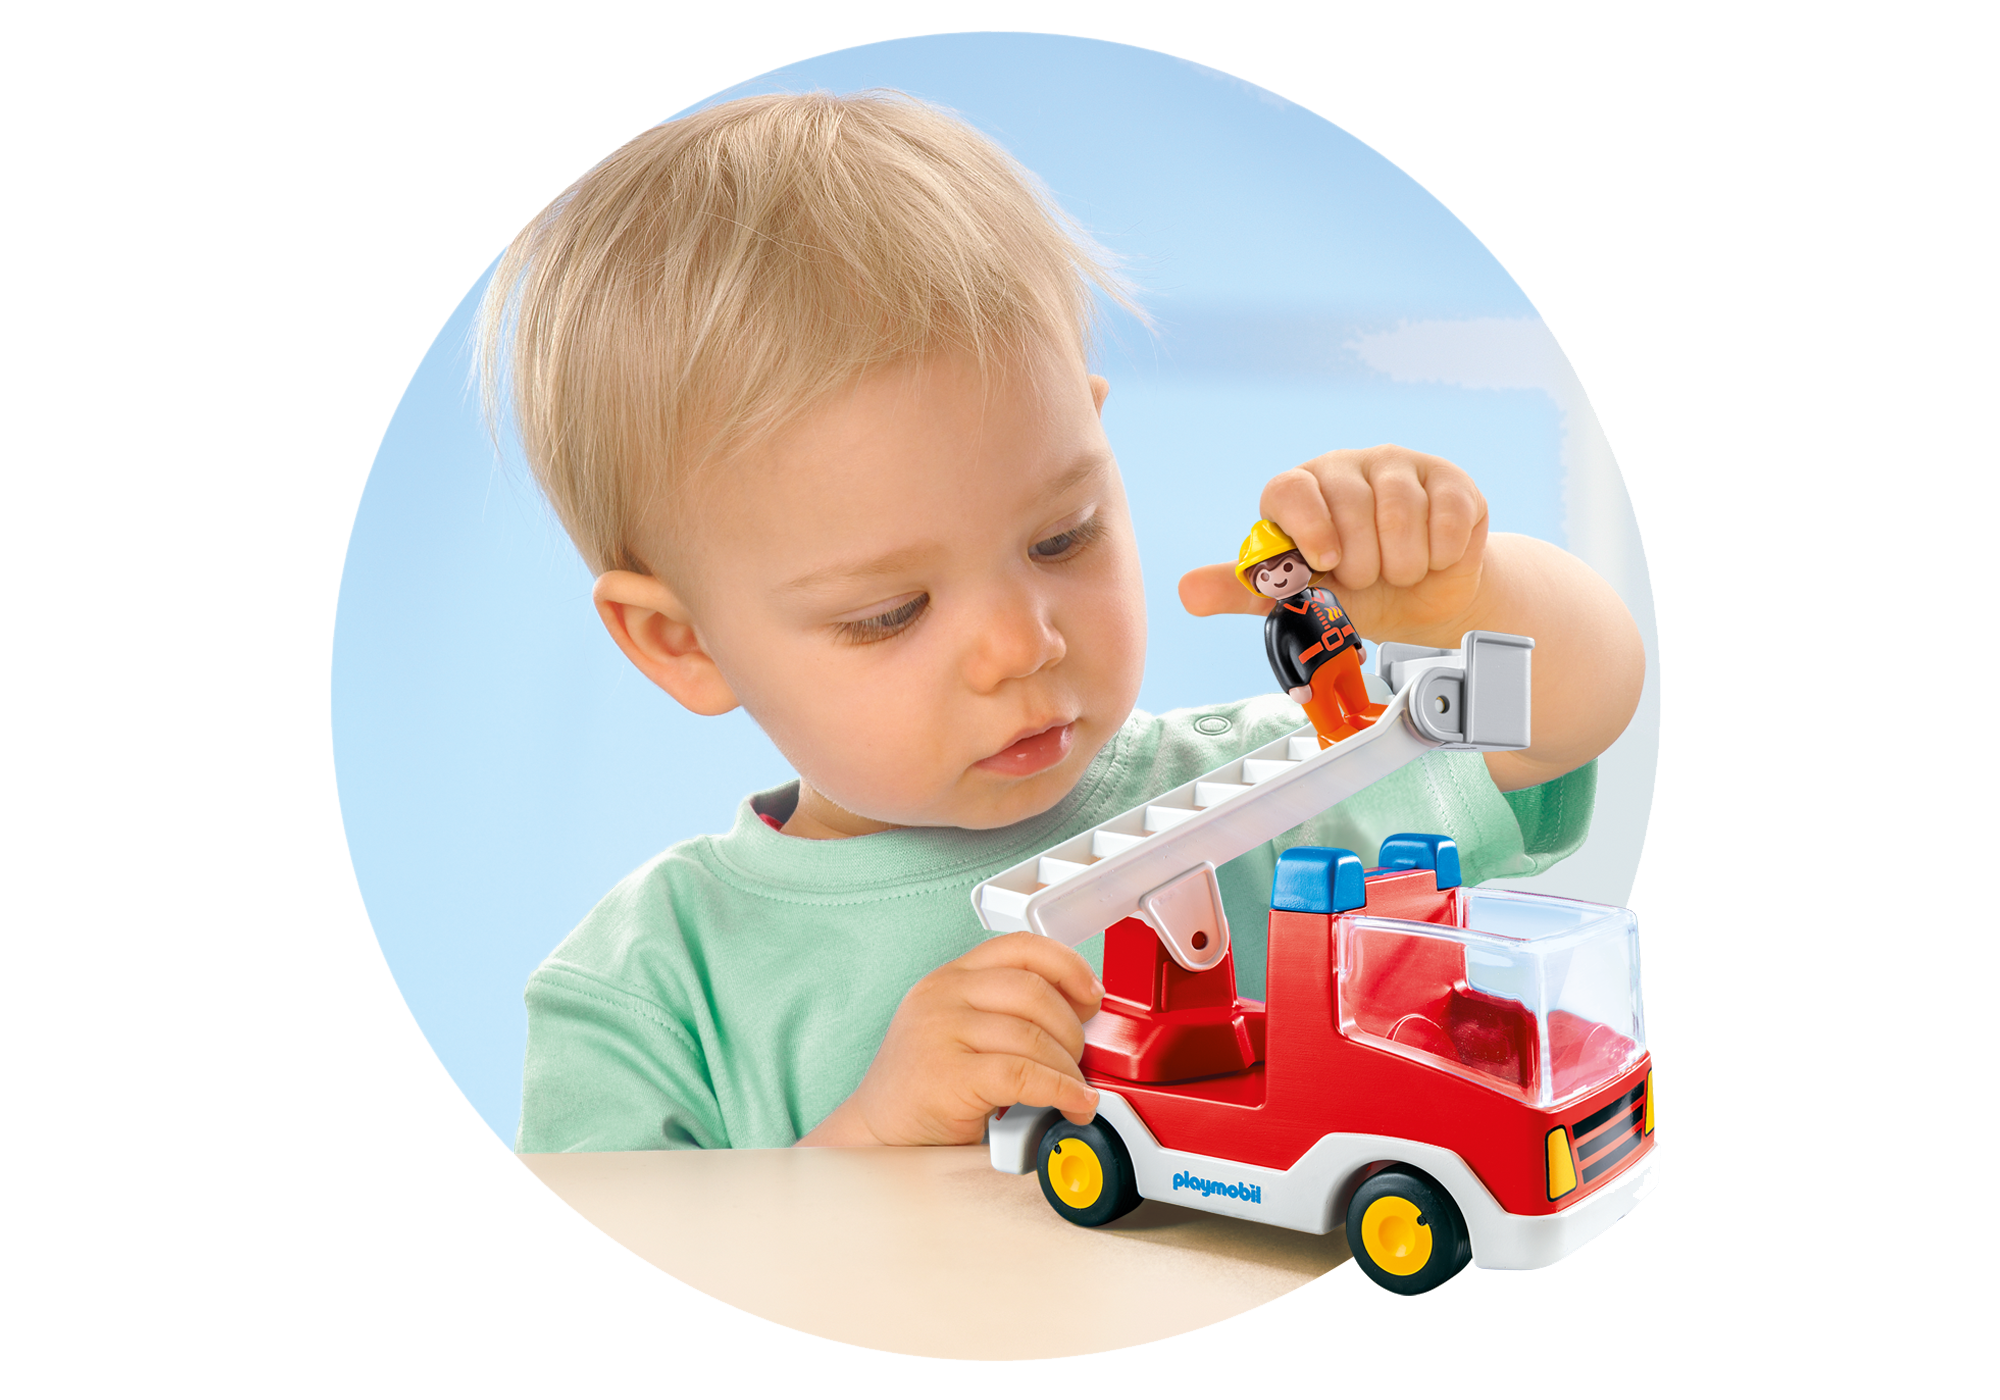 http://media.playmobil.com/i/playmobil/6967_product_extra1